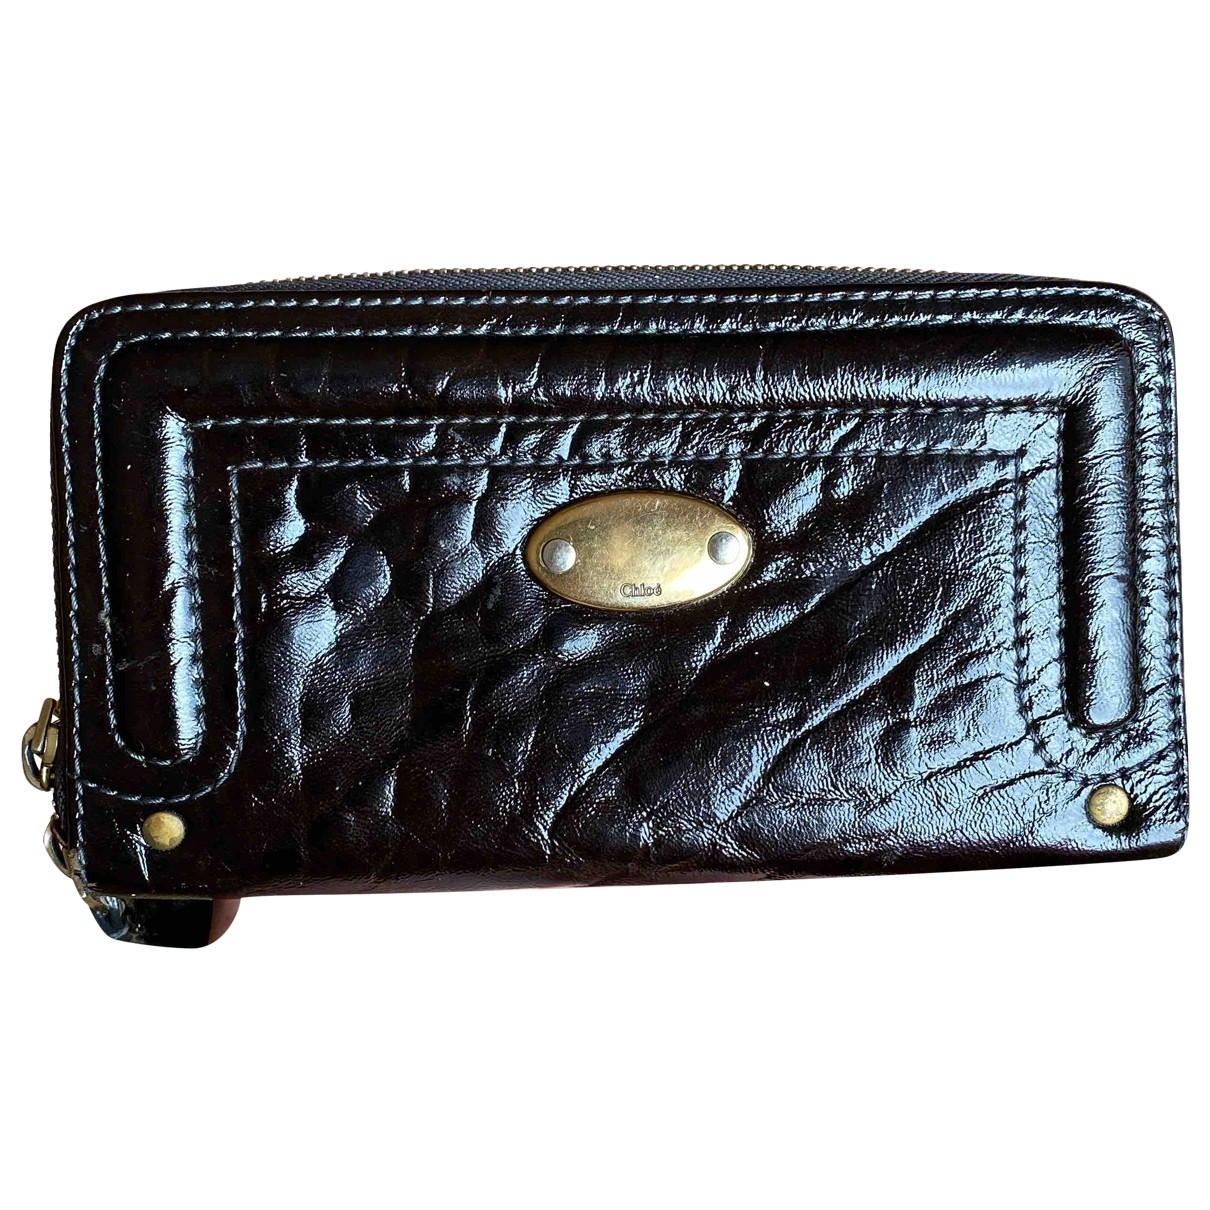 Chloé \N Brown Patent leather wallet for Women \N